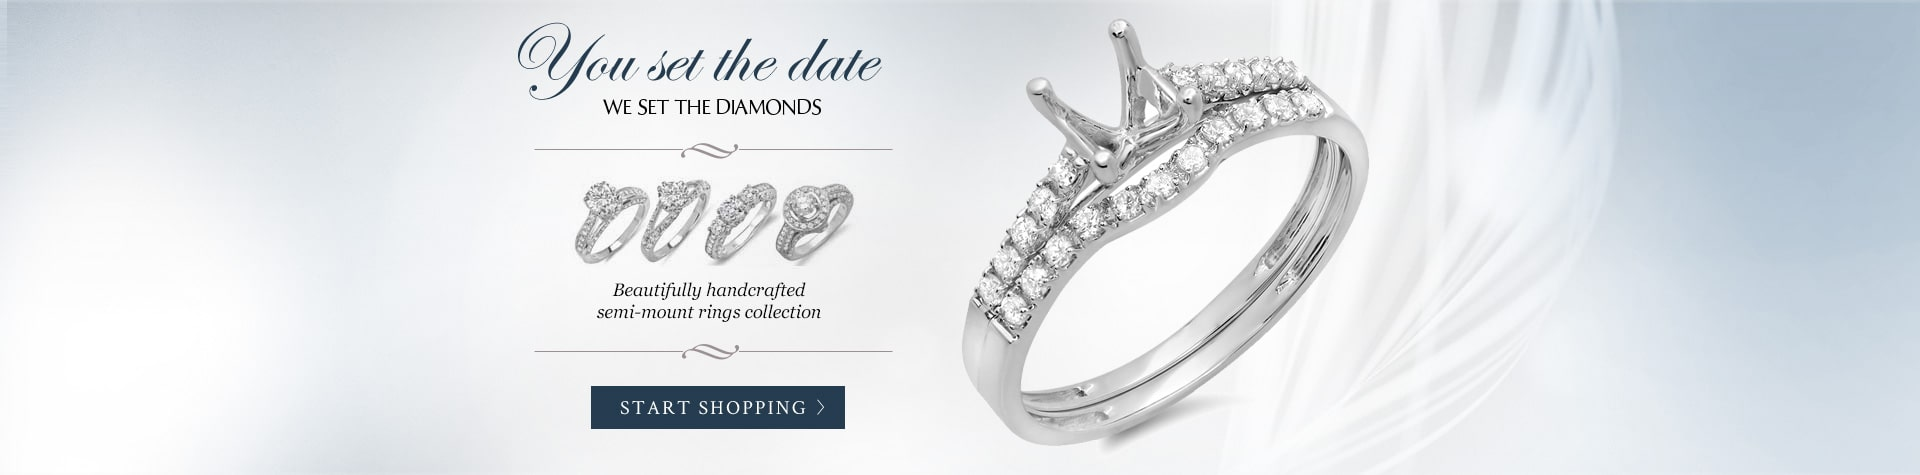 1 Ct Certified Diamond Rings & Jewelry